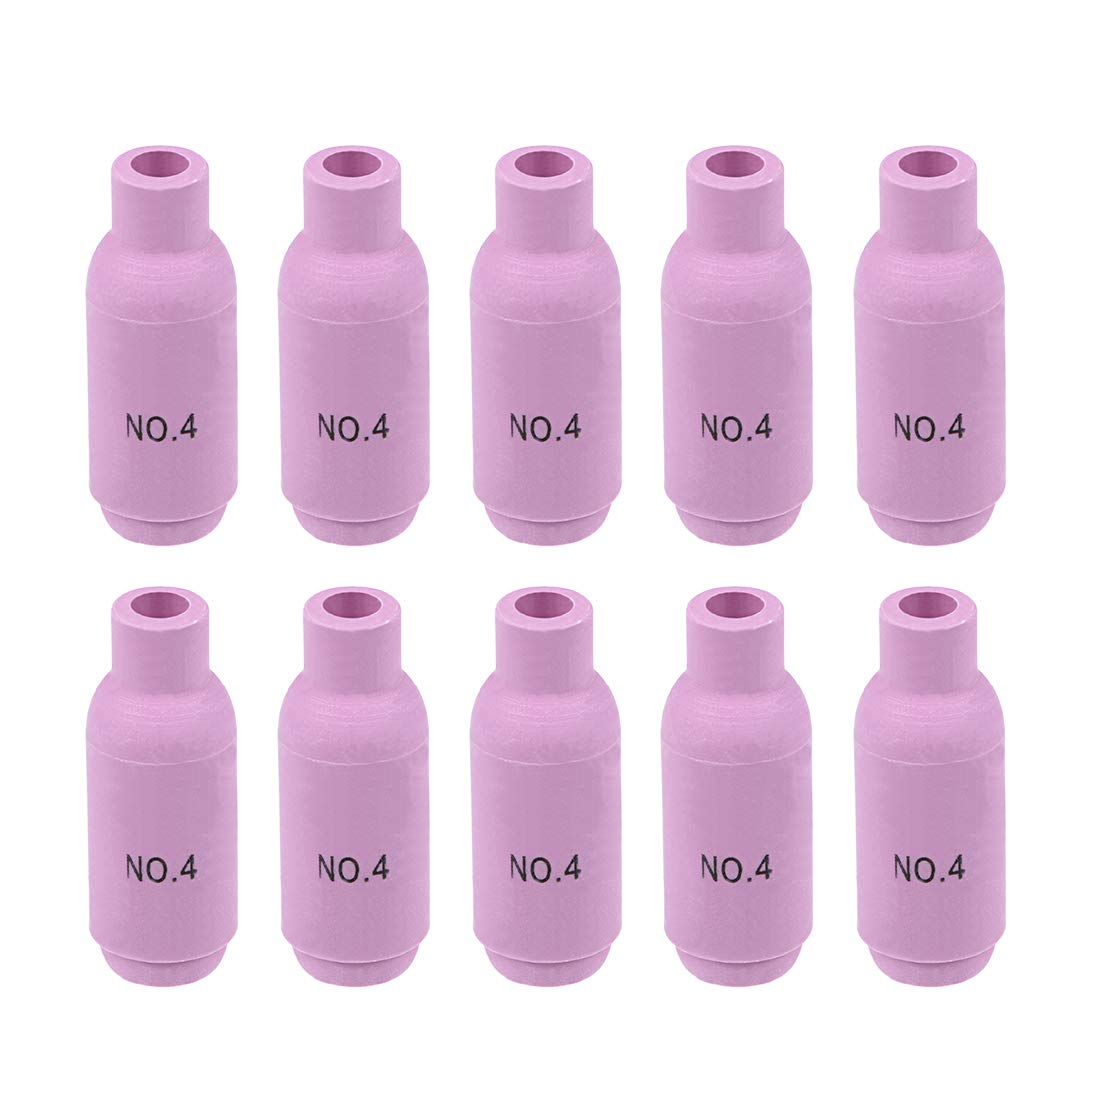 uxcell 10Pcs 10N50 4# TIG Electric Welding Torch Ceramic Nozzle Cap Sleeve 6.5/×48mm